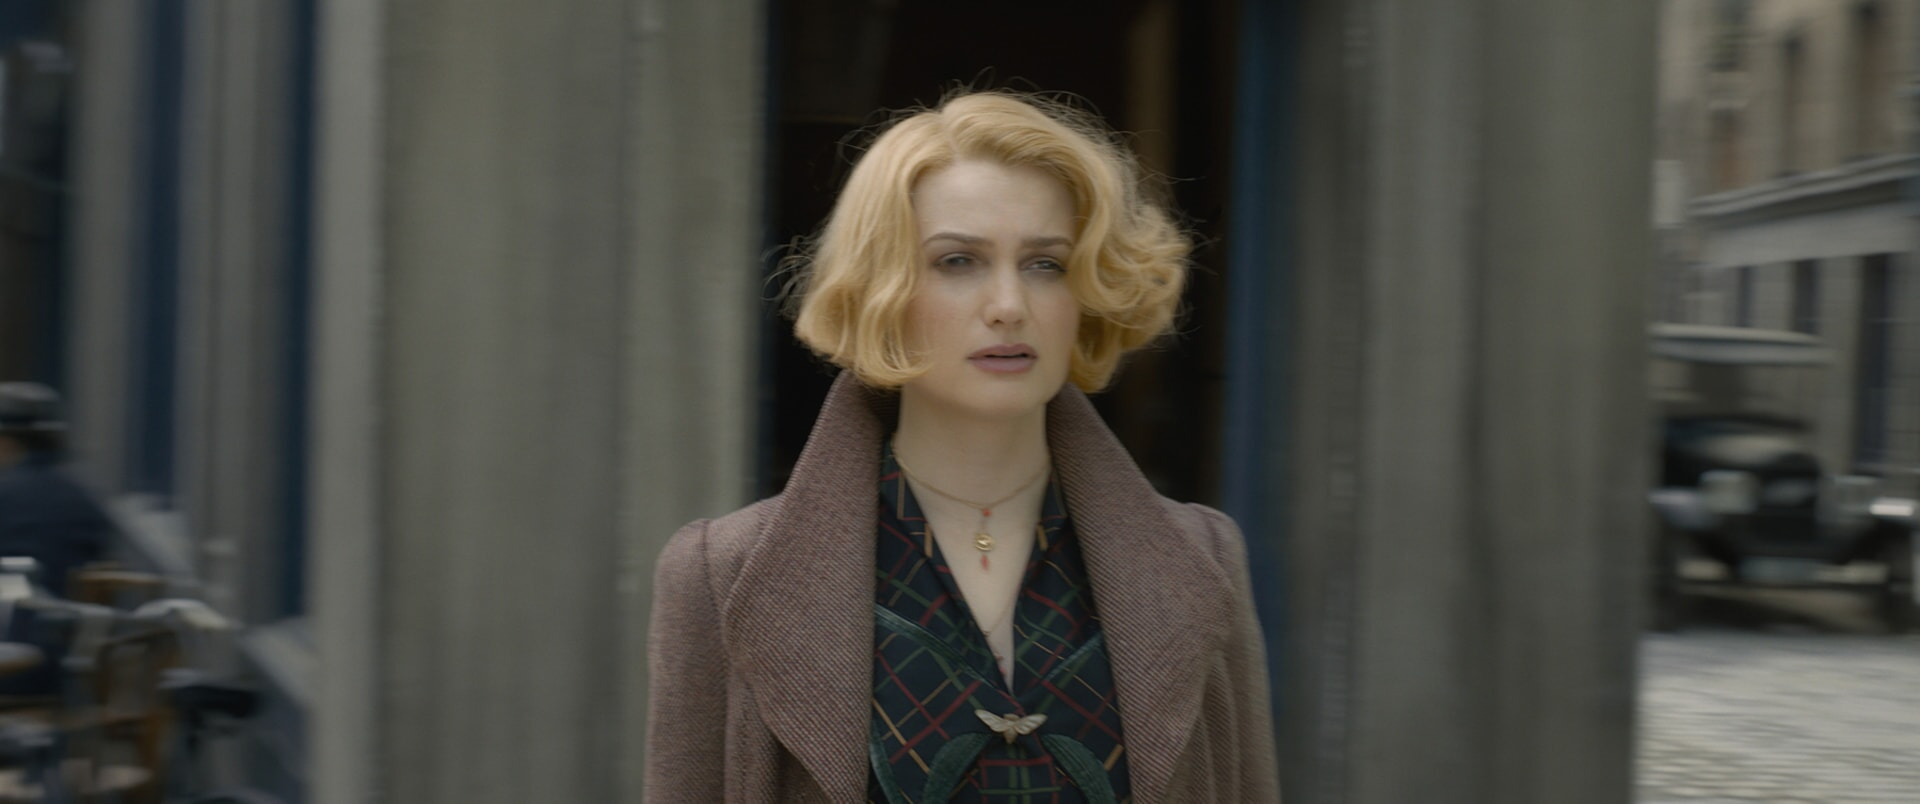 "ALISON SUDOL as Queenie Goldstein in Warner Bros. Pictures' fantasy adventure ""FANTASTIC BEASTS: THE CRIMES OF GRINDELWALD,"" a Warner Bros. Pictures release."